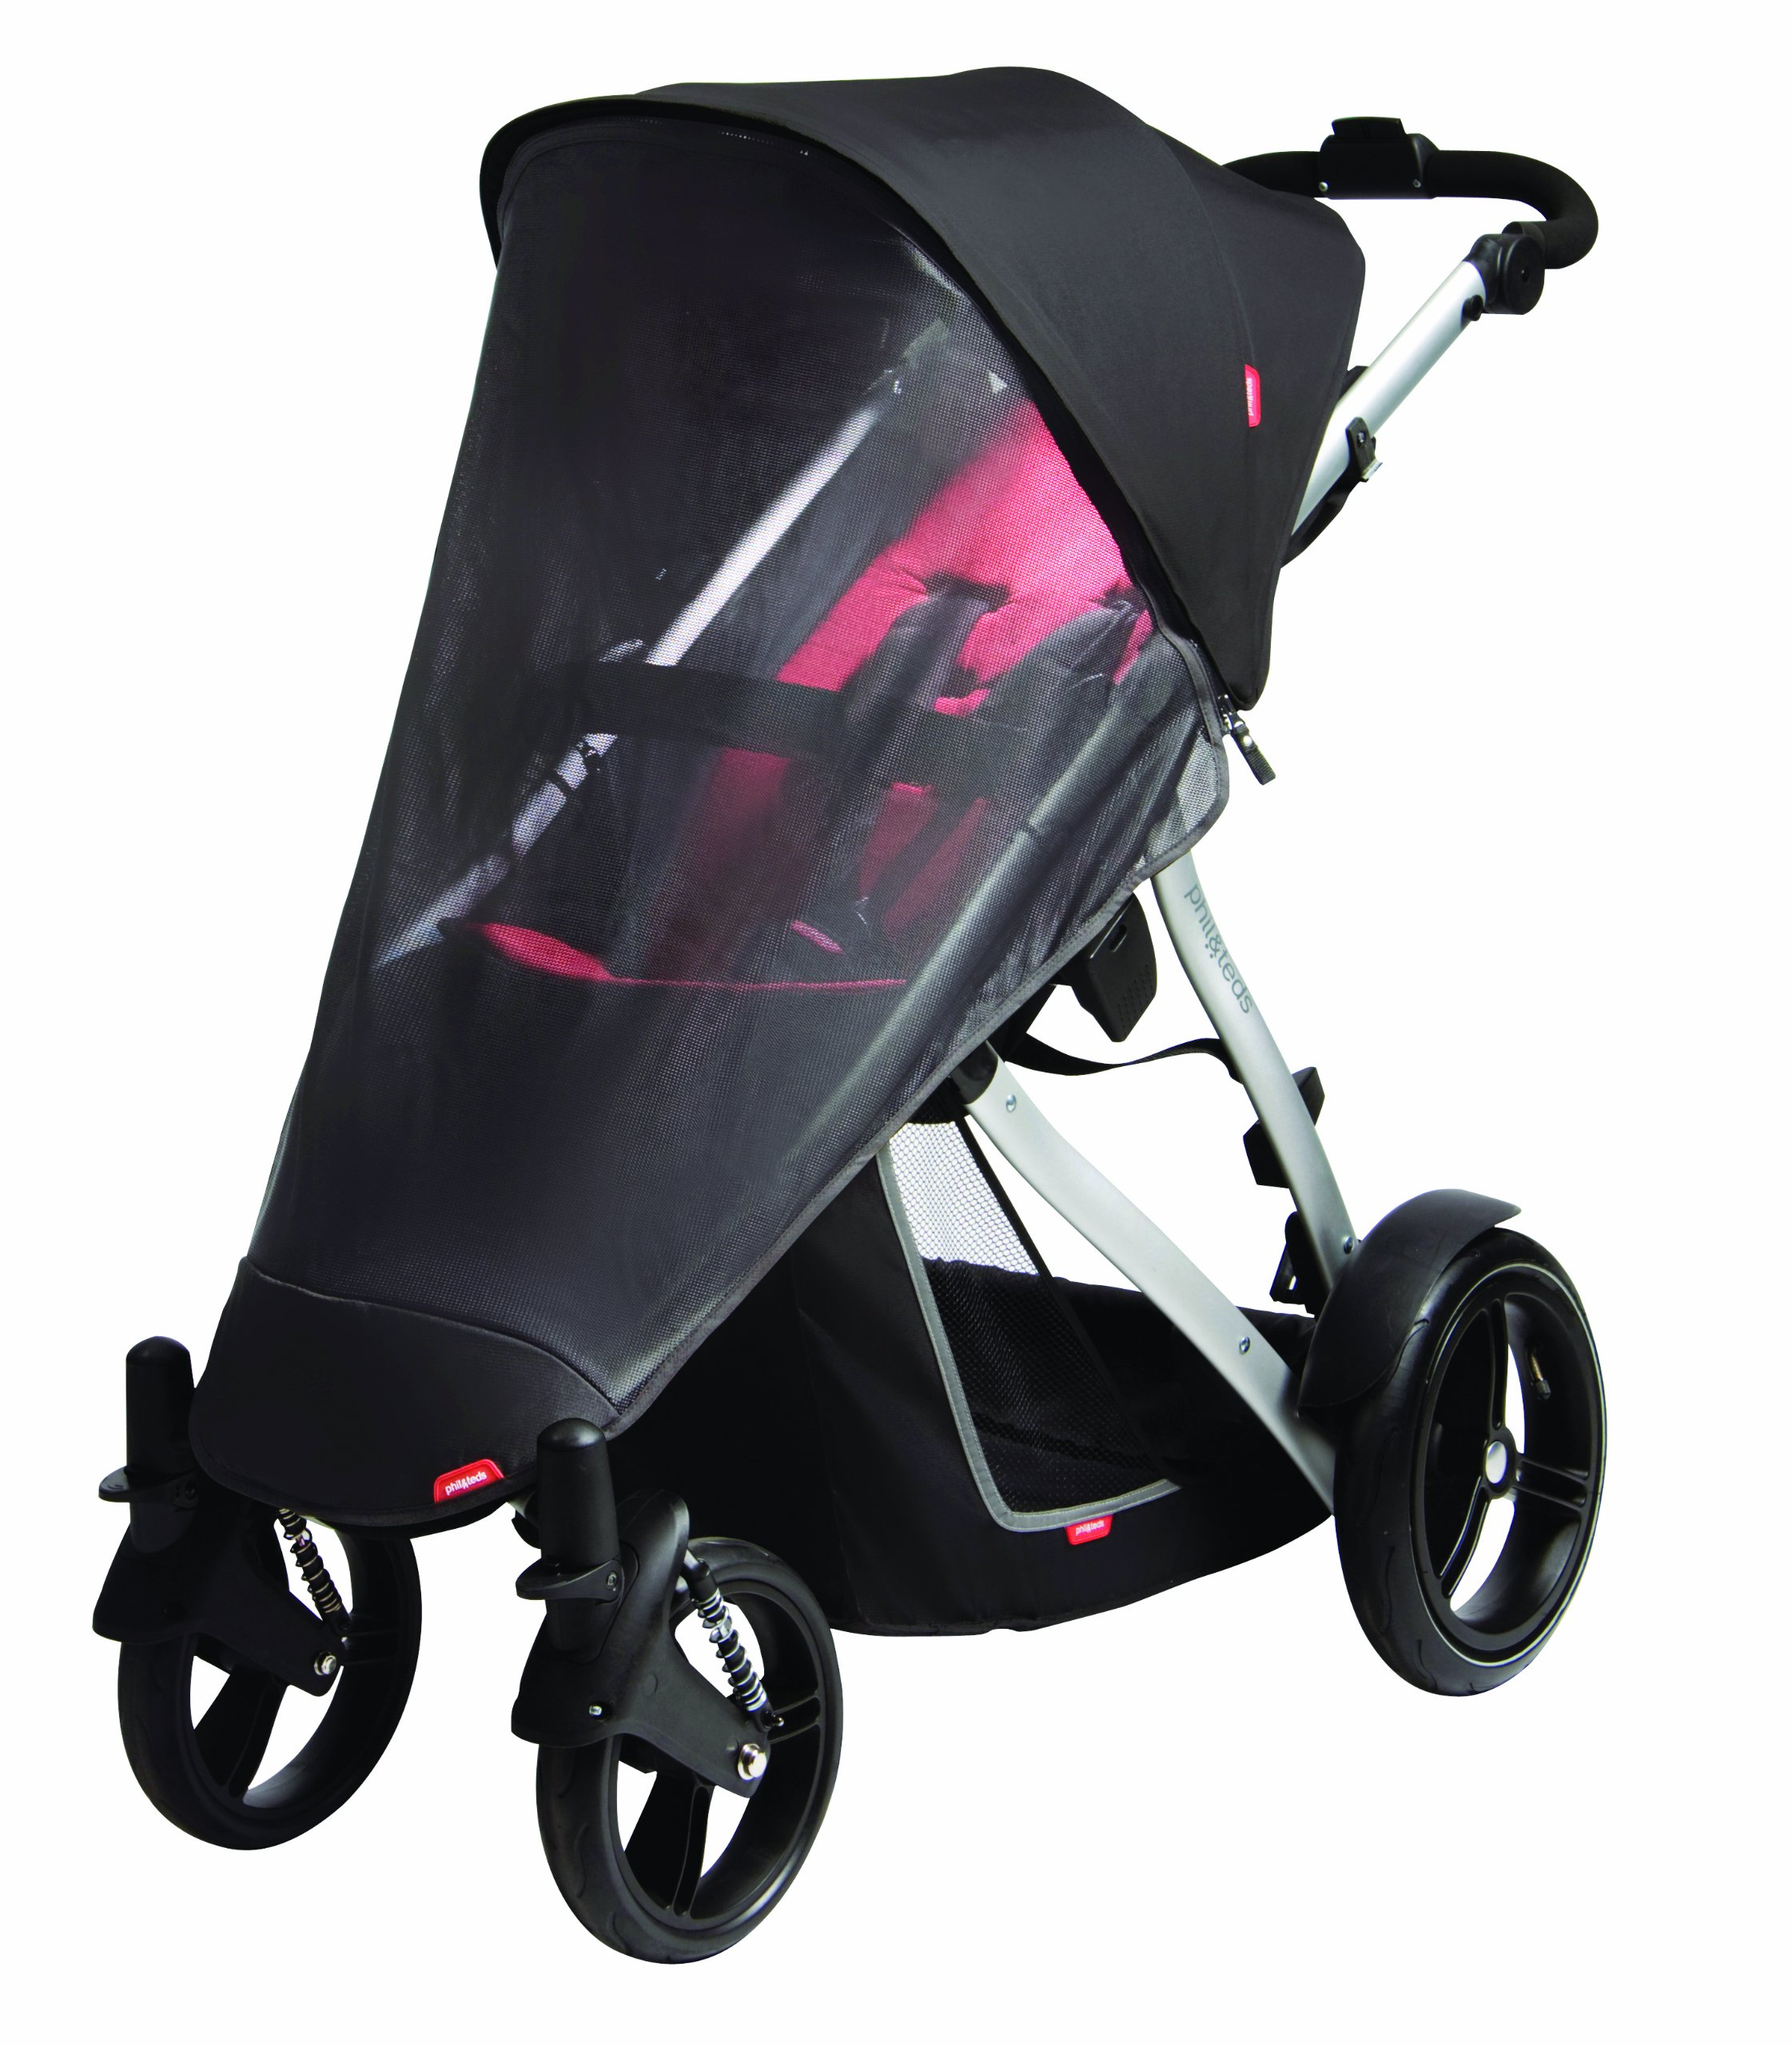 Phil&Teds Uv Mesh Cover For Vibe, Vibe 2 Or Verve Single Stroller by phil&teds (Image #1)